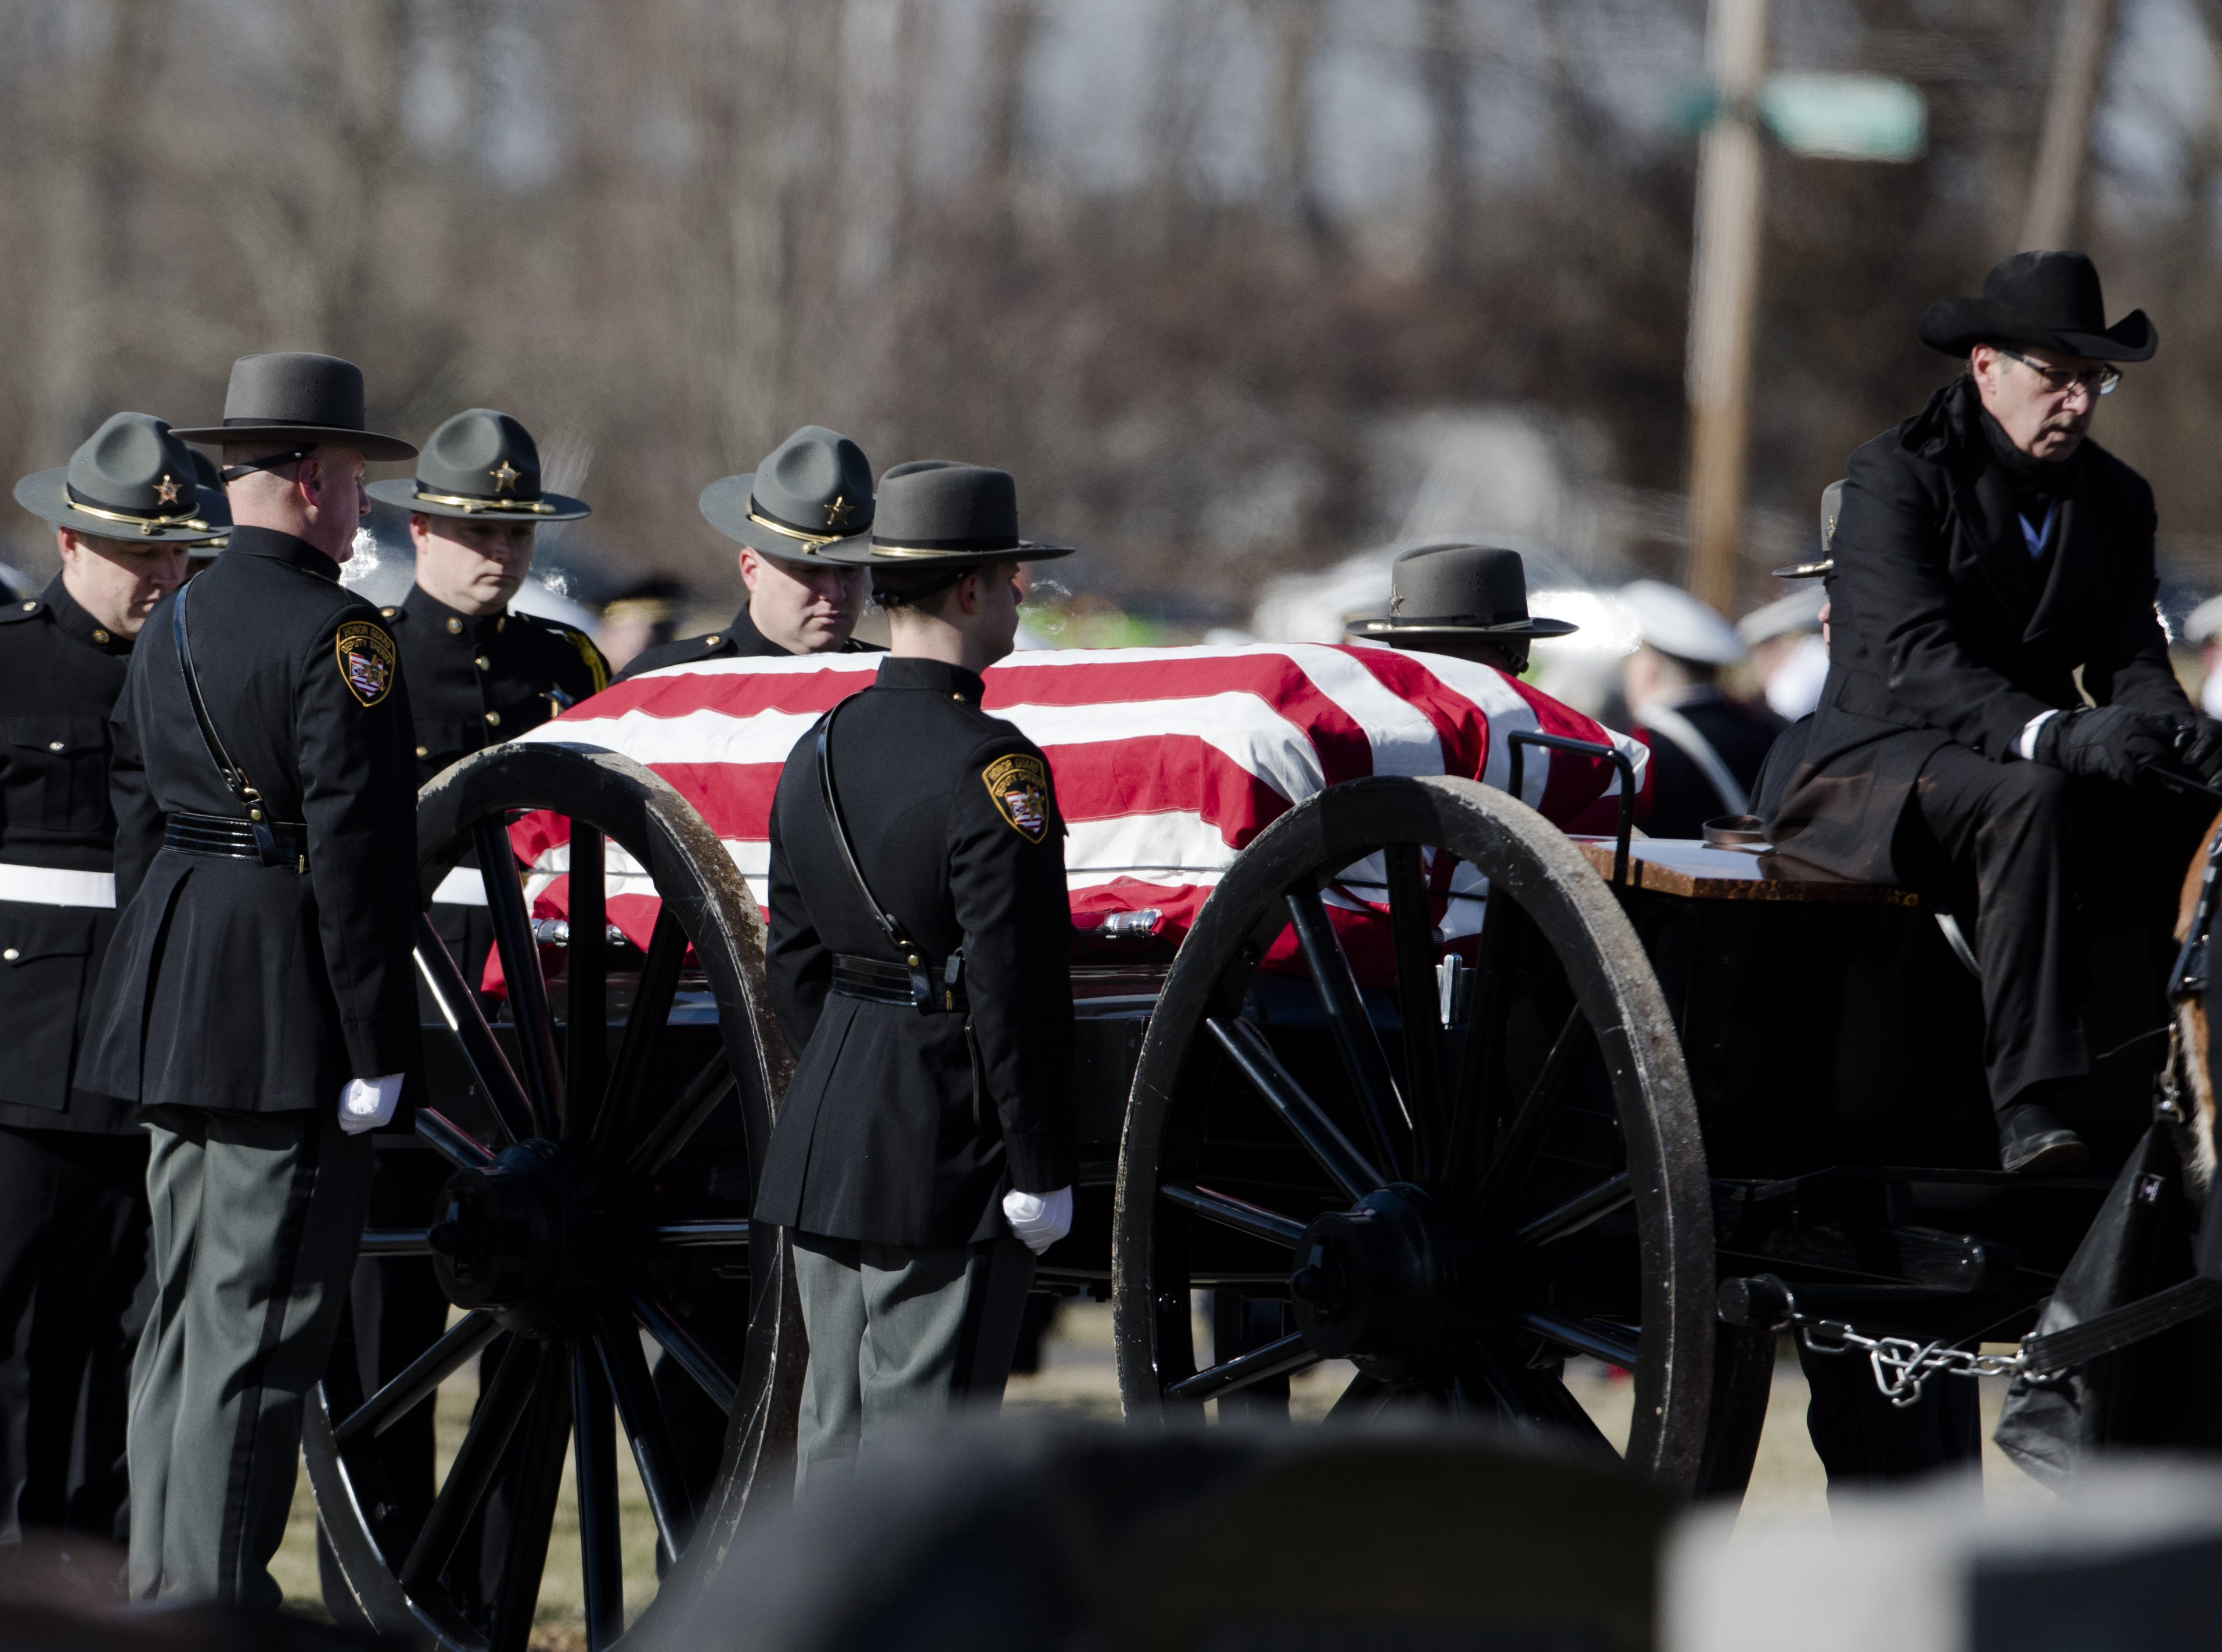 The casket carrying Detective Bill Brewer, a 20-year veteran of the Clermont County Sheriff's Office, is processed through Pierce Township Cemetery in a Caisson on Friday, Feb. 8, 2019, at in Cincinnati. Brewer, 42, of Pierce Township, died in the line of duty. He was shot Feb. 2 during a standoff. Deputy Brewer is survived by a wife and 5-year-old son.